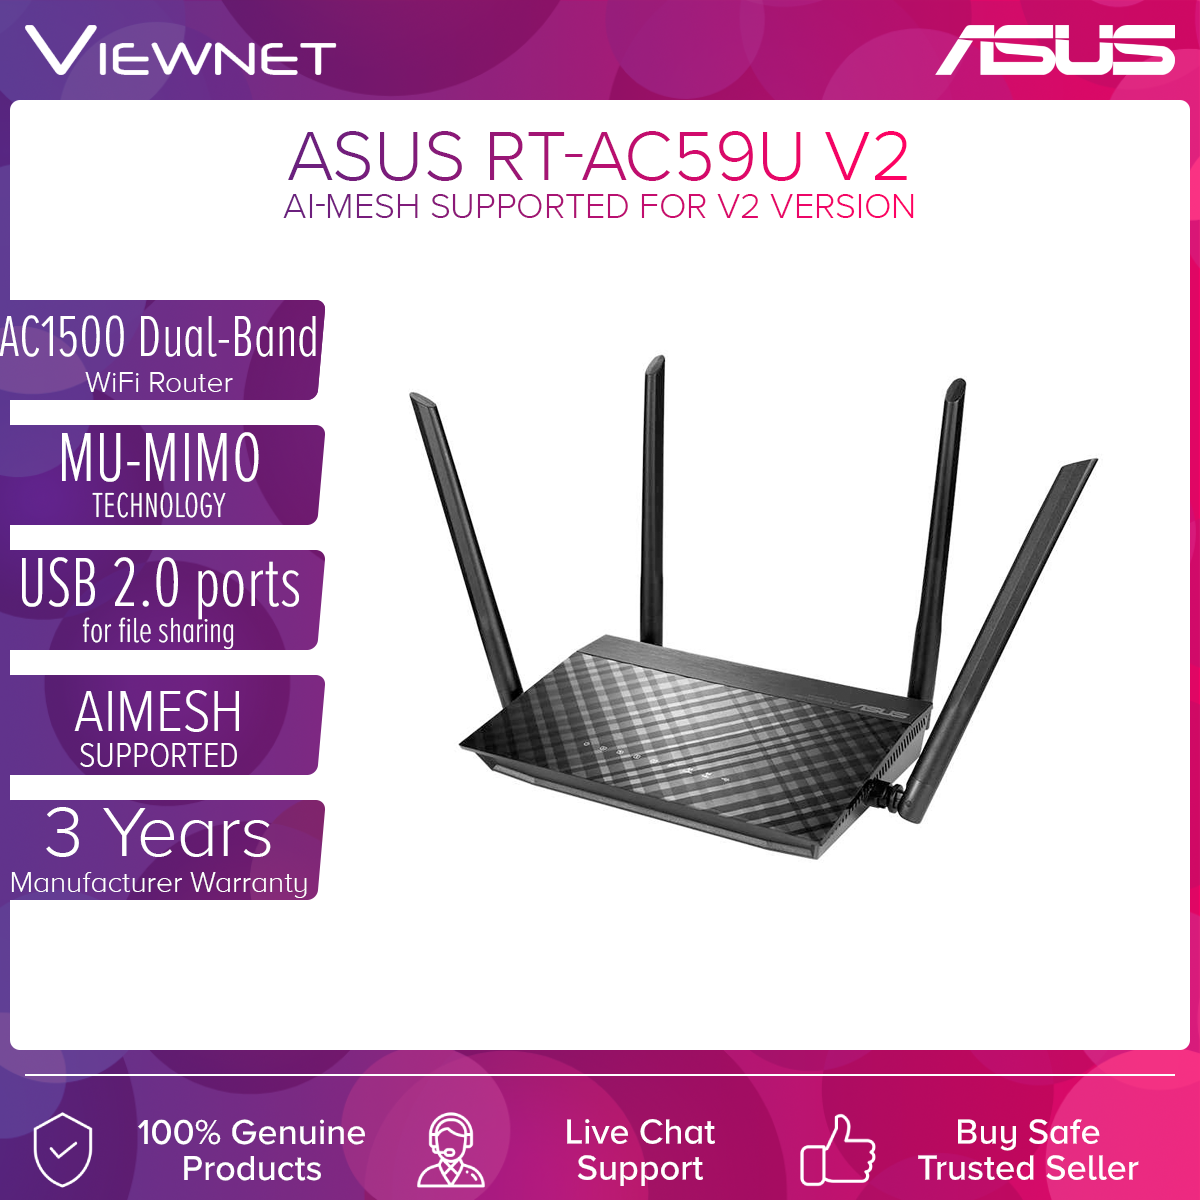 [V2 AI MESH SUPPORT] ASUS RT-AC59U V2 AC1500 Dual Band 2.4GHz + 5GHz Wireless Router